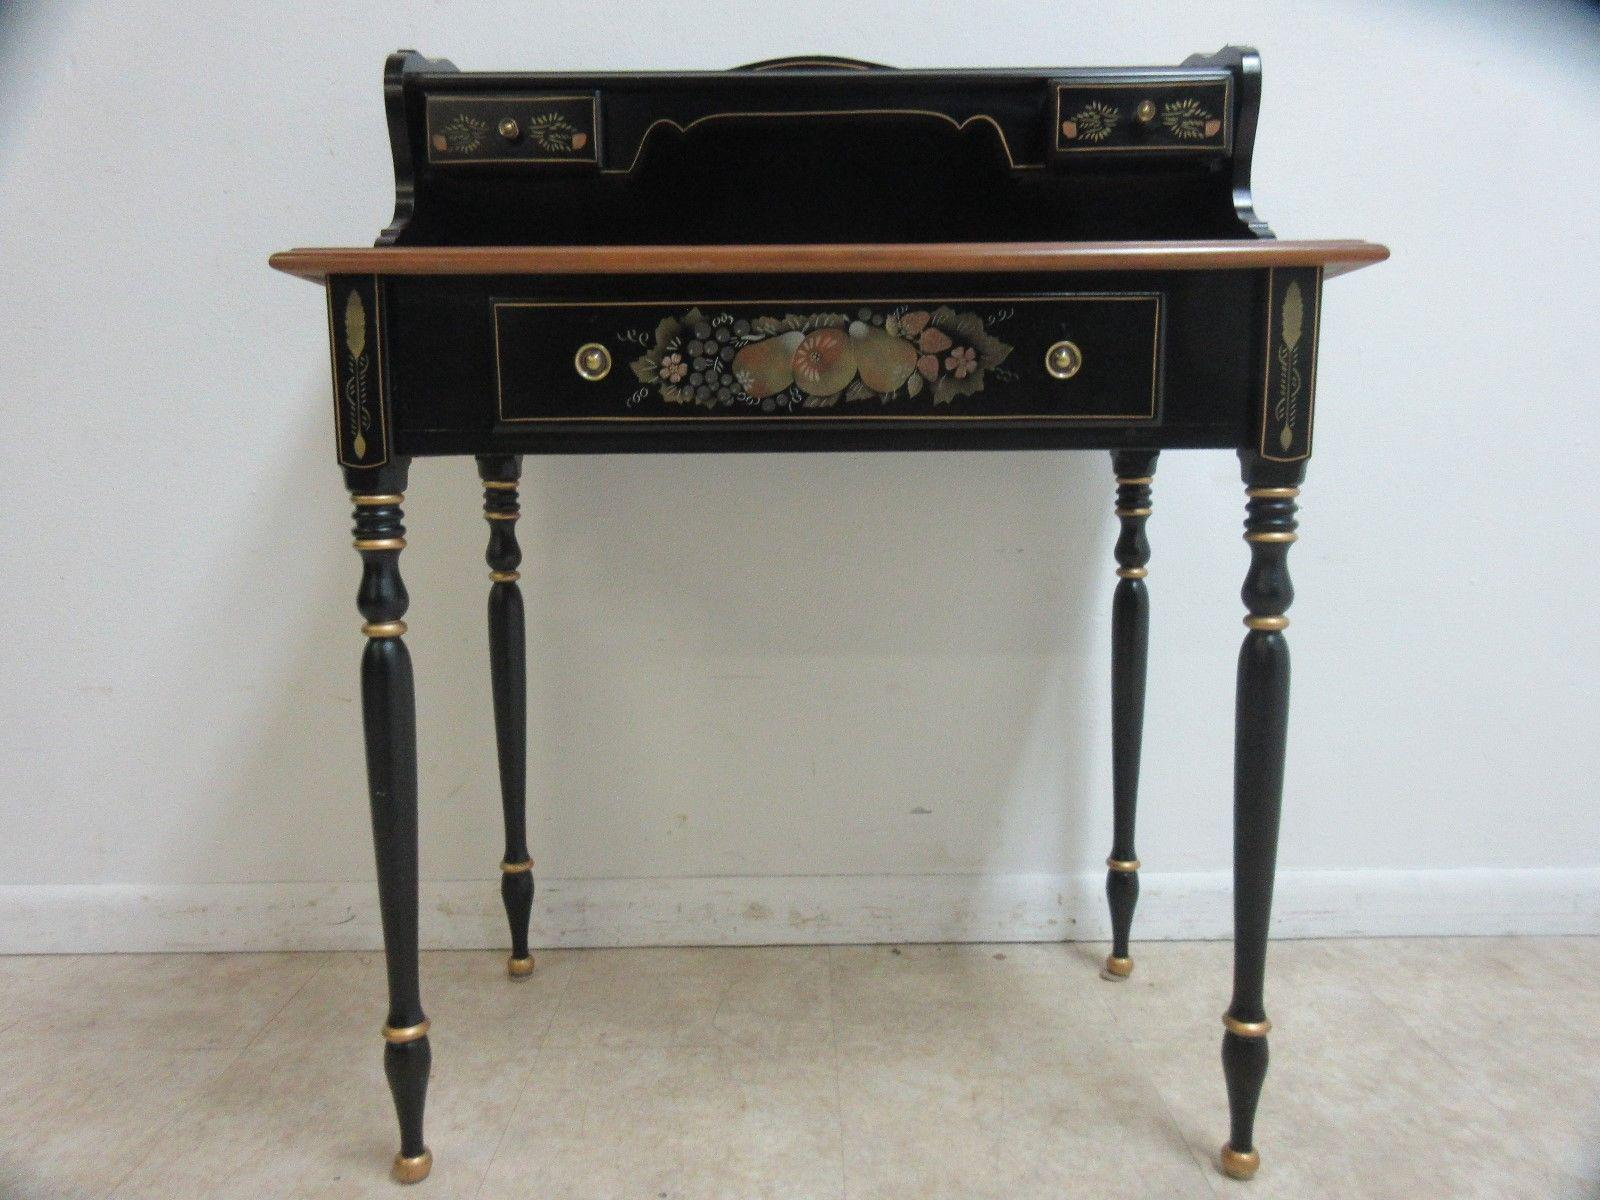 Ethan Allen Hitchcock Paint Decorated Writing Desk  Chairish. Platform Bed Frame With Storage Drawers. Reclaimed Wood Dining Room Tables. Minimal Desk. Hooker Tables. Already Assembled Chest Of Drawers. Target Table Set. Full Size Bed Plans With Drawers. Childs Activity Desk